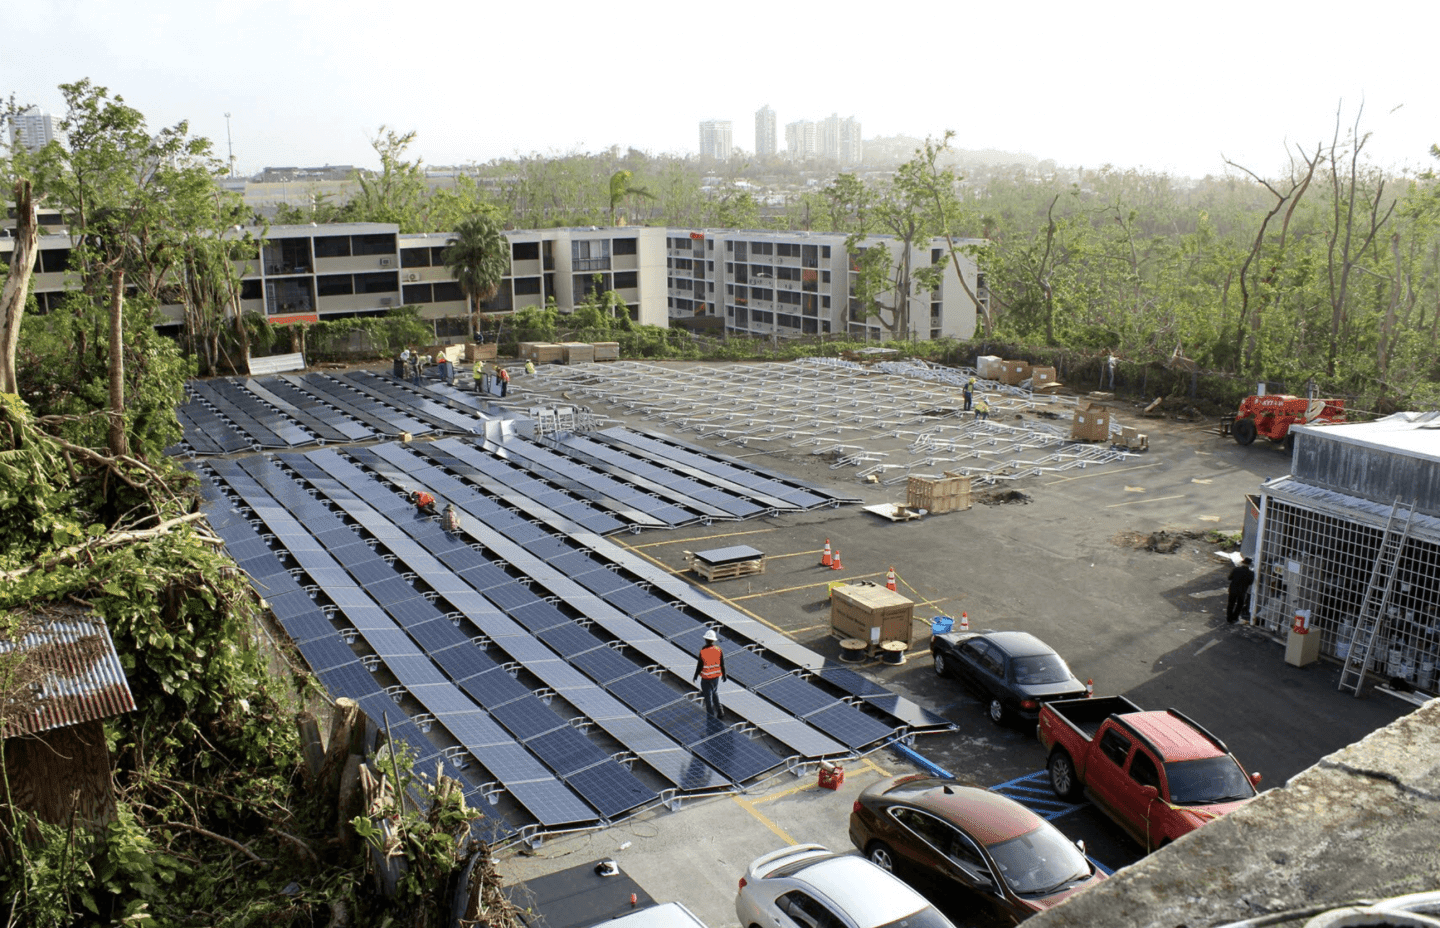 Tesla Sent Solar Panels and Batteries To Children's Hospital In Puerto Rico After Hurricane Maria Left The Island Without Power